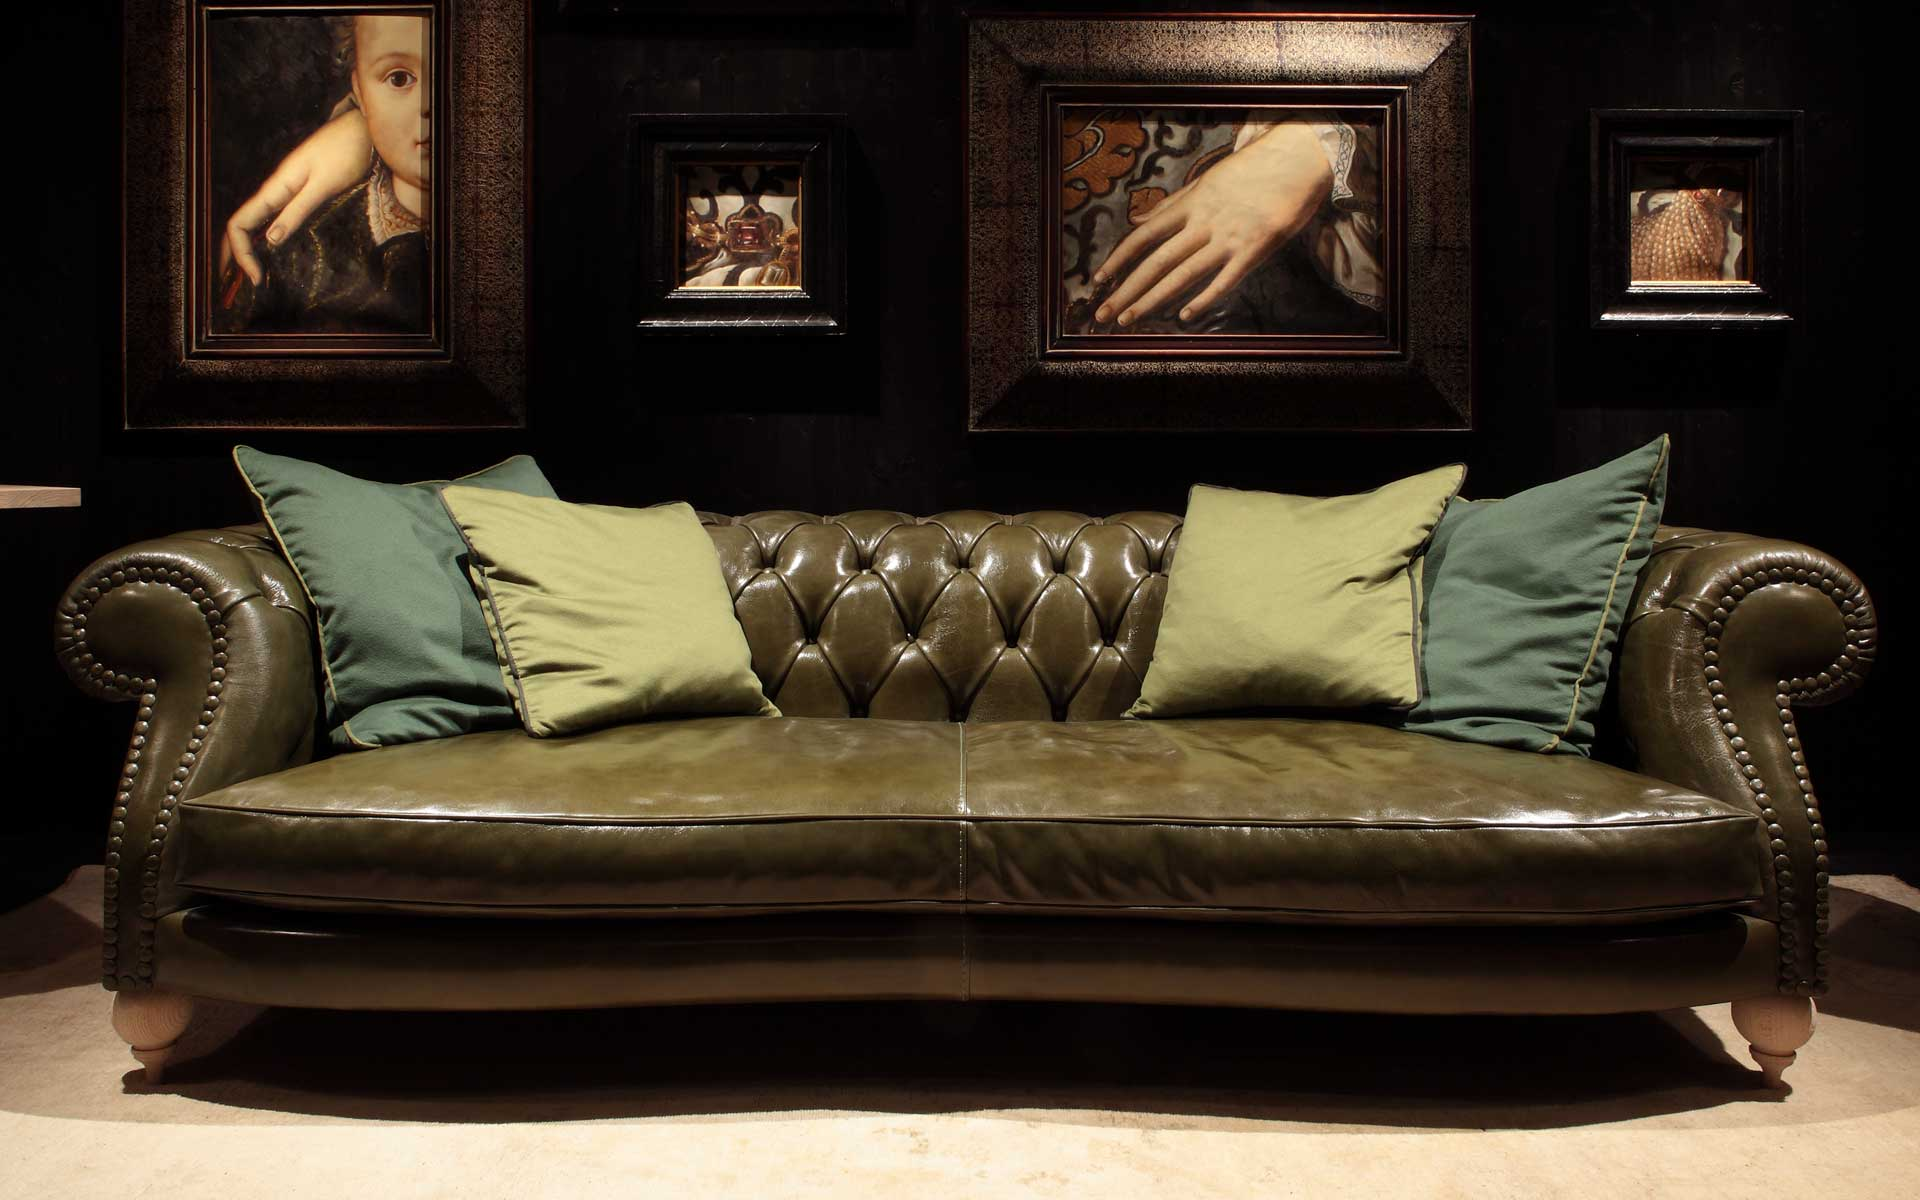 olive green sofa living room ideas leather sleeper ikea baxter from italy brings fine sofas home | interior design ...